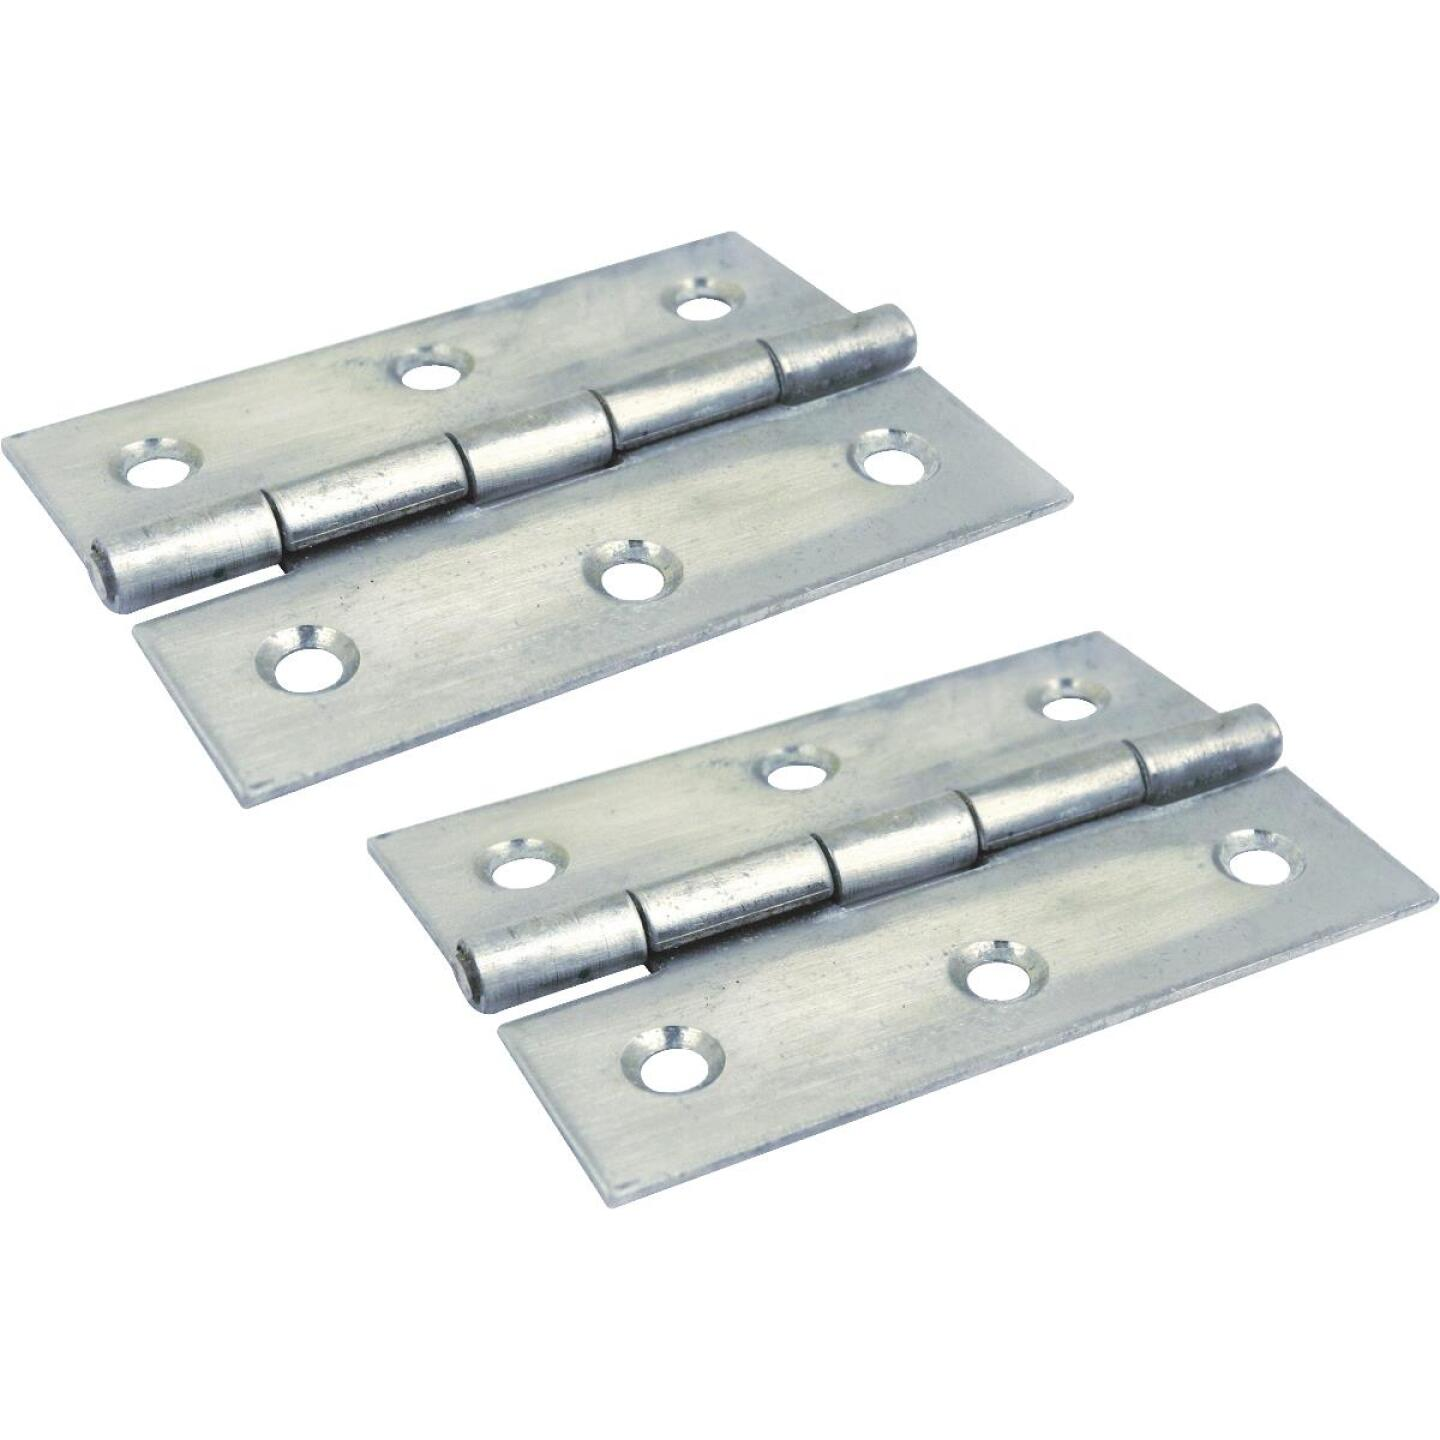 Seachoice 1-5/8 In. x 2-1/2 In. Stainless Steel Extruded Butt Hinge (2-Pack) Image 1